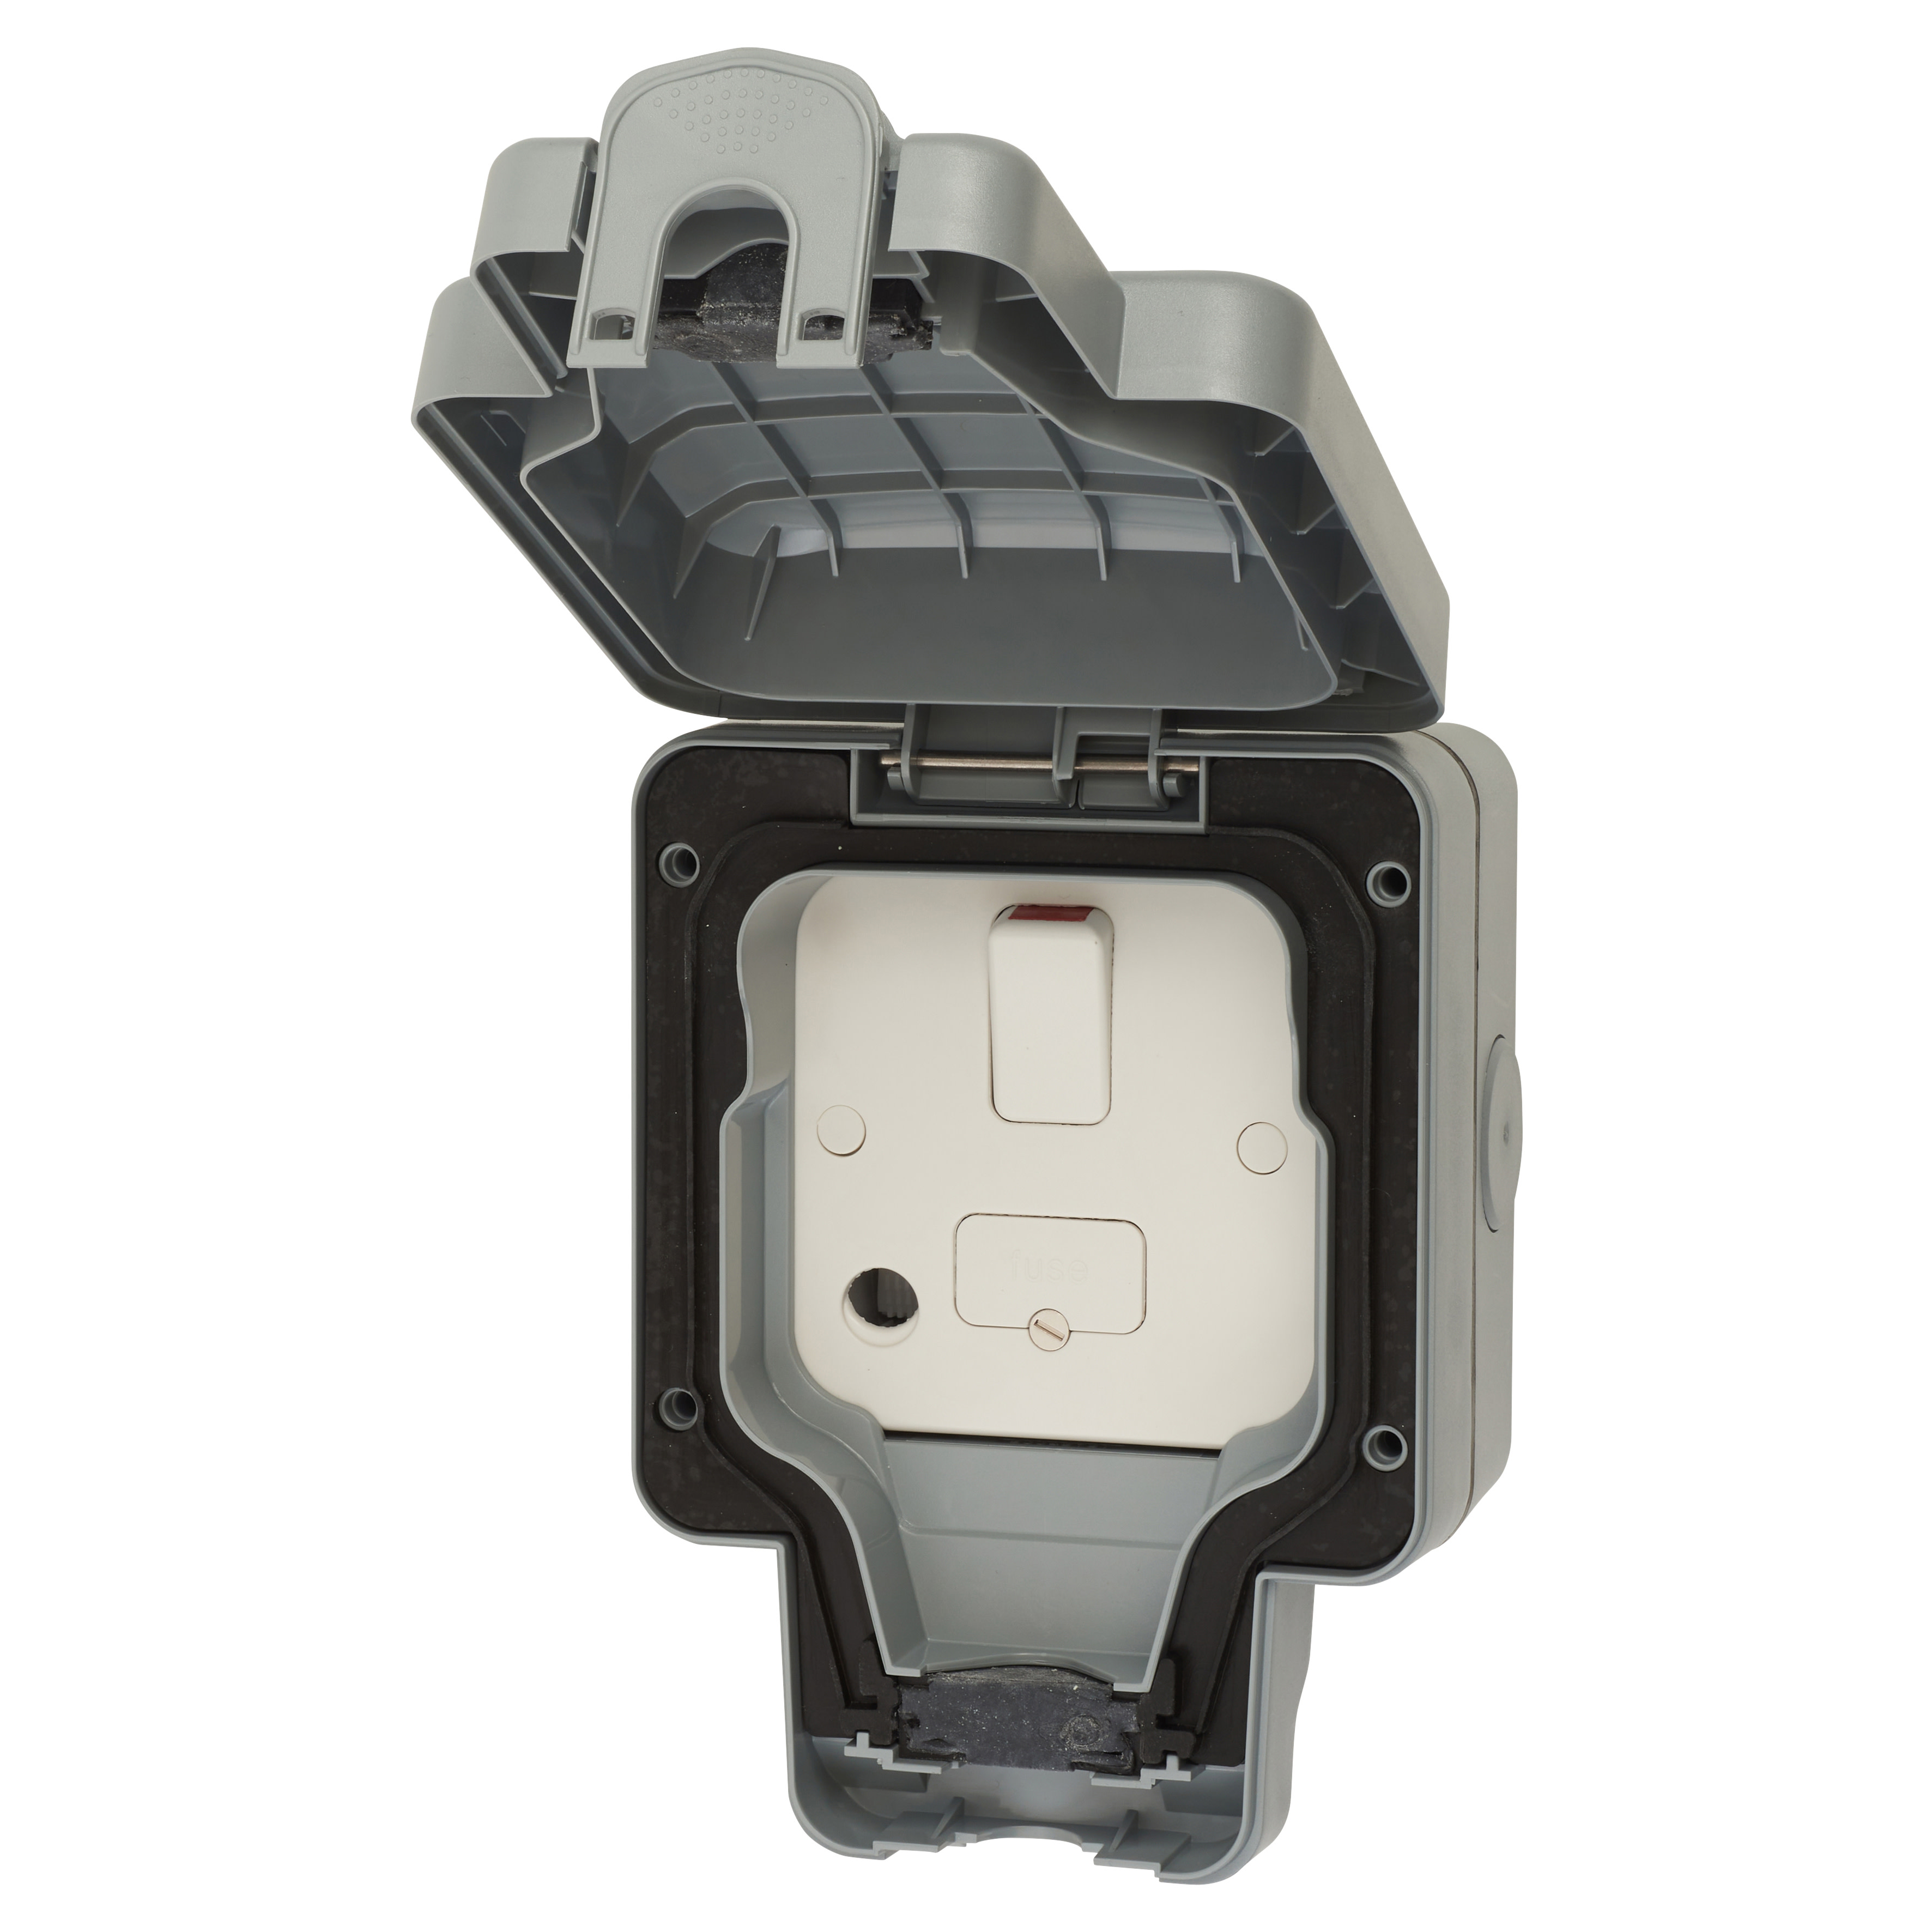 MK Masterseal Plus 13A IP66 1 Gang Outdoor Switched Fused Spur - Grey)